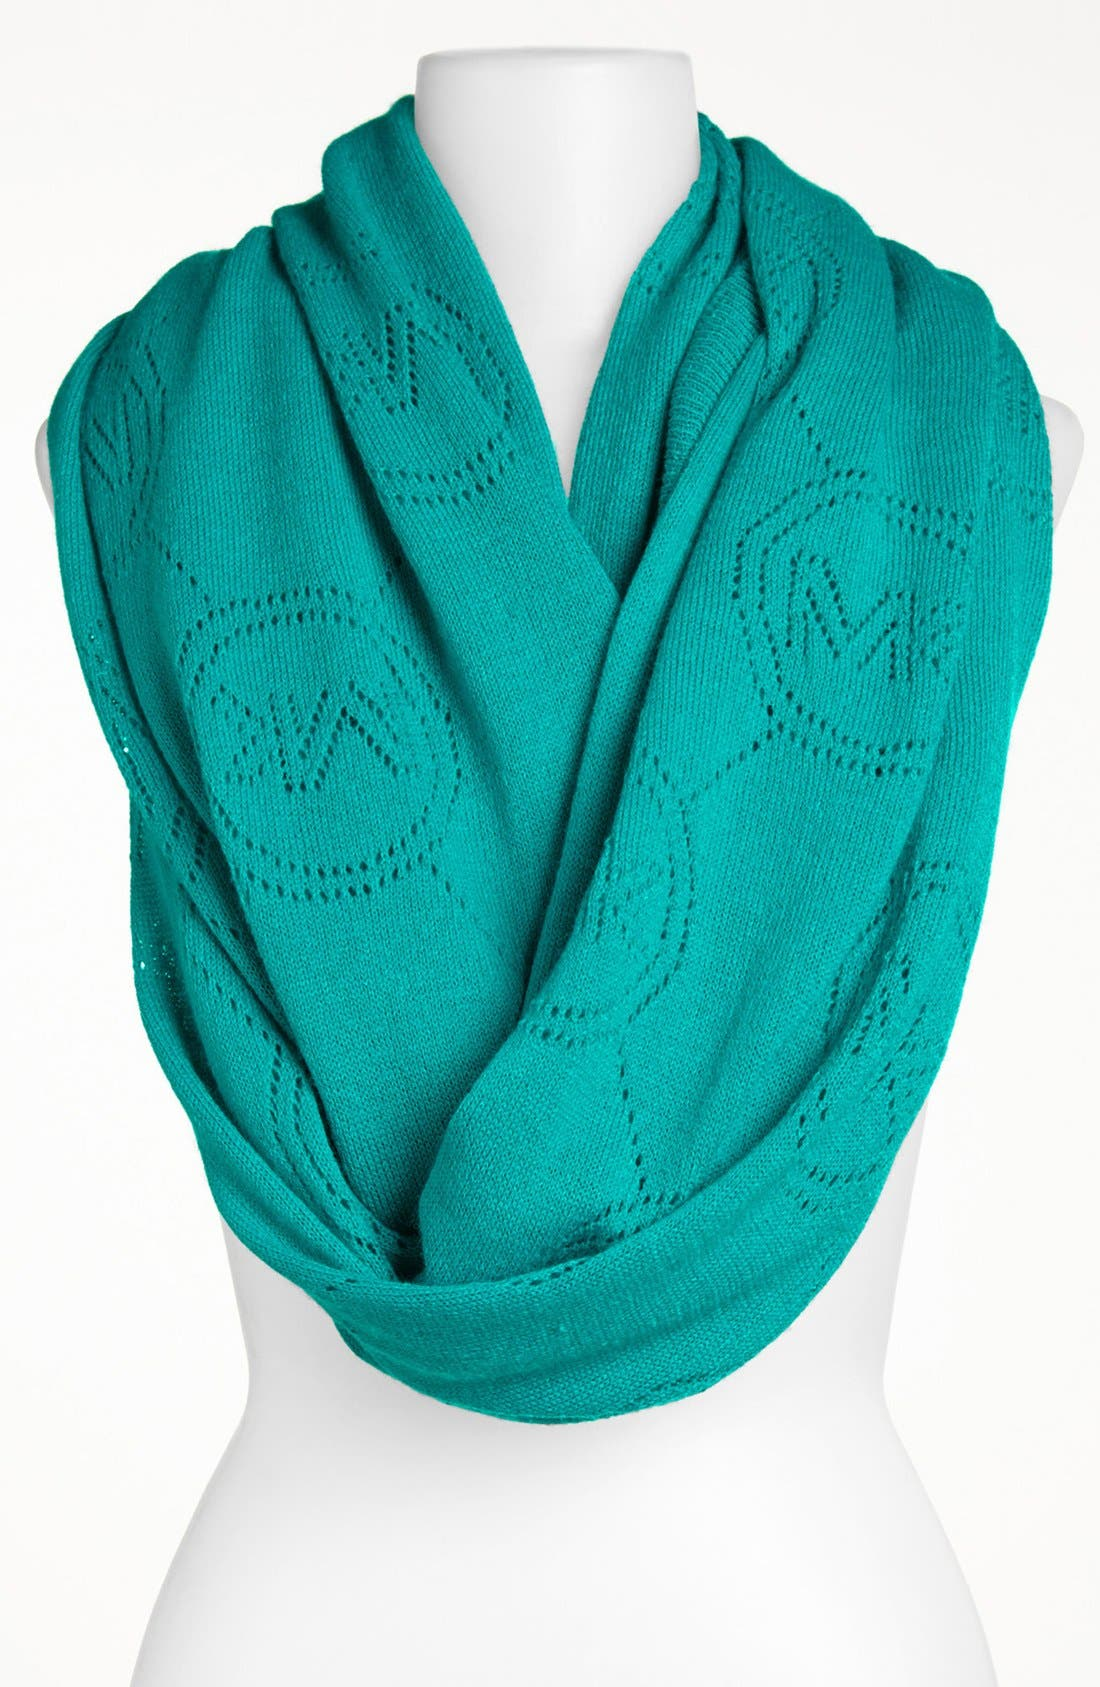 Alternate Image 1 Selected - MICHAEL Michael Kors 'Jet Set' Monogram Infinity Scarf